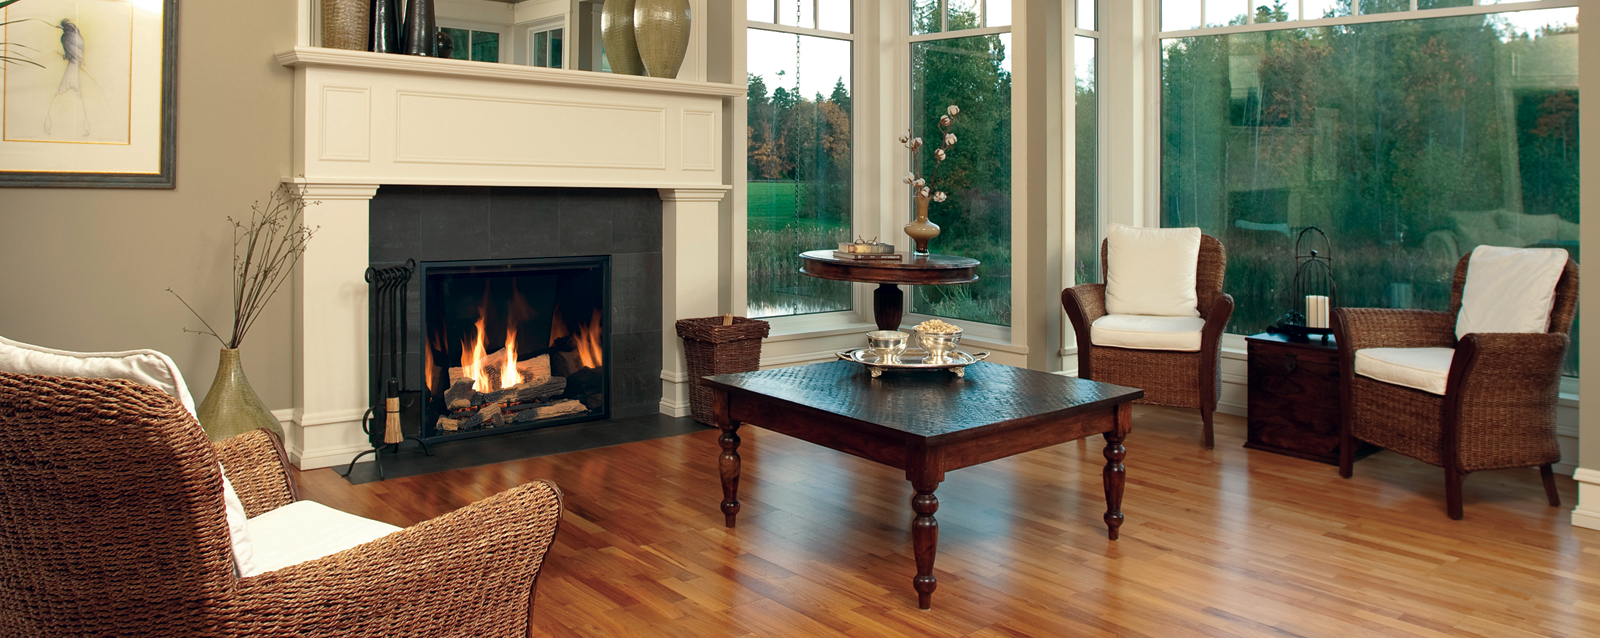 montigo fireplace with sofa on wooden floor for family room ideas